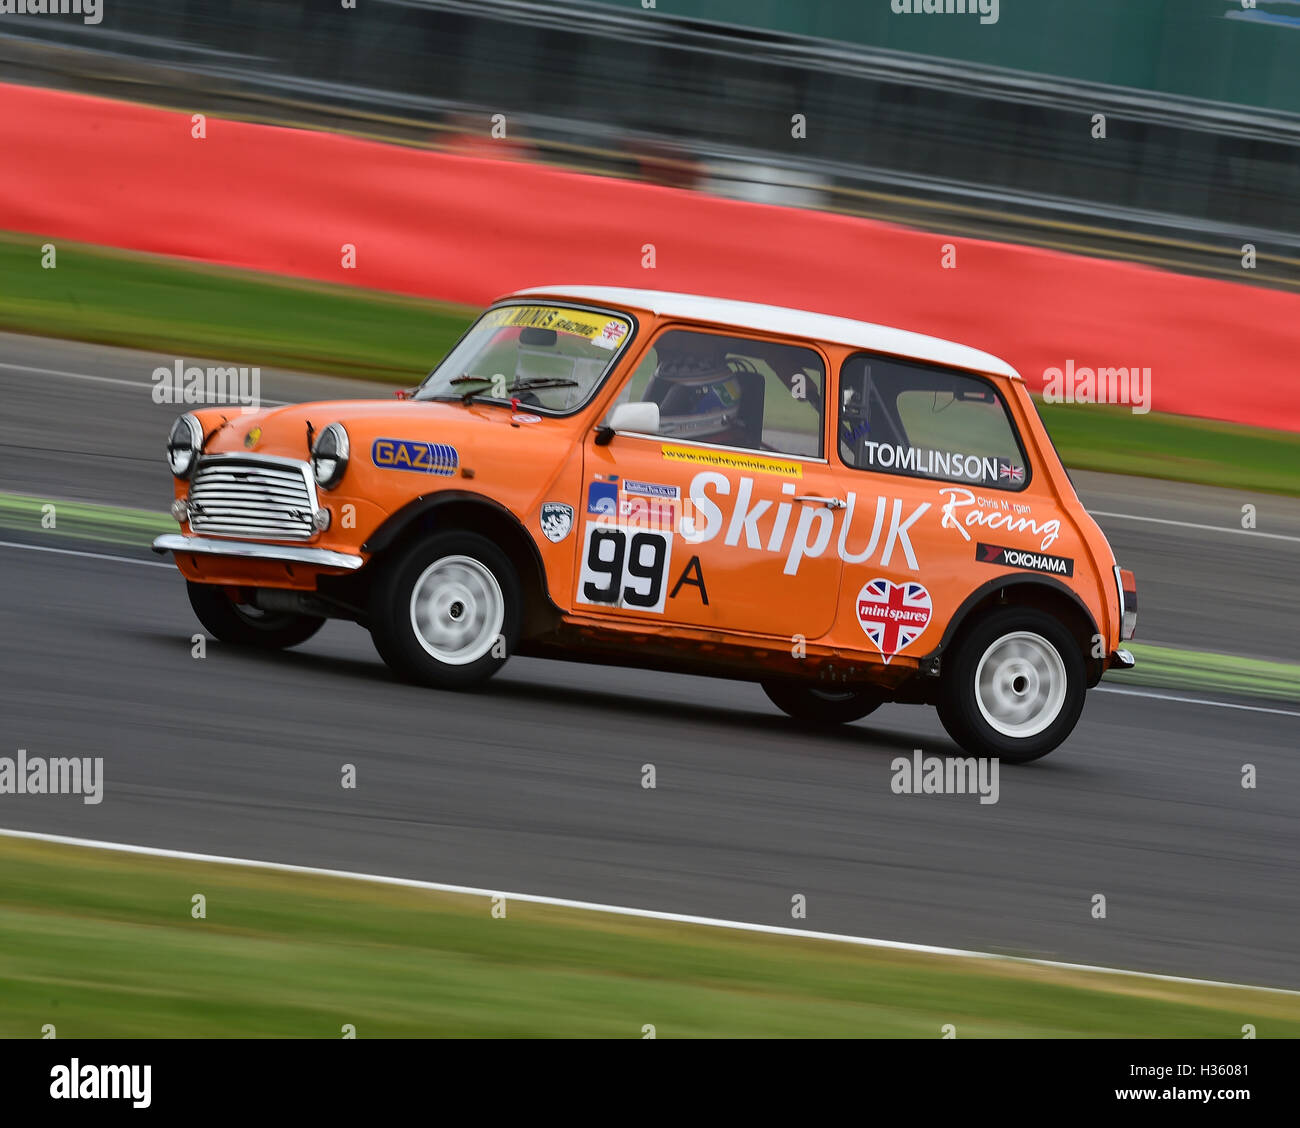 Sam Tomlinson, Mighty Mini, 1275, Mighty Mini Championship, Saturday, Silverstone, Silverstone truck festival, Saturday, - Stock Image